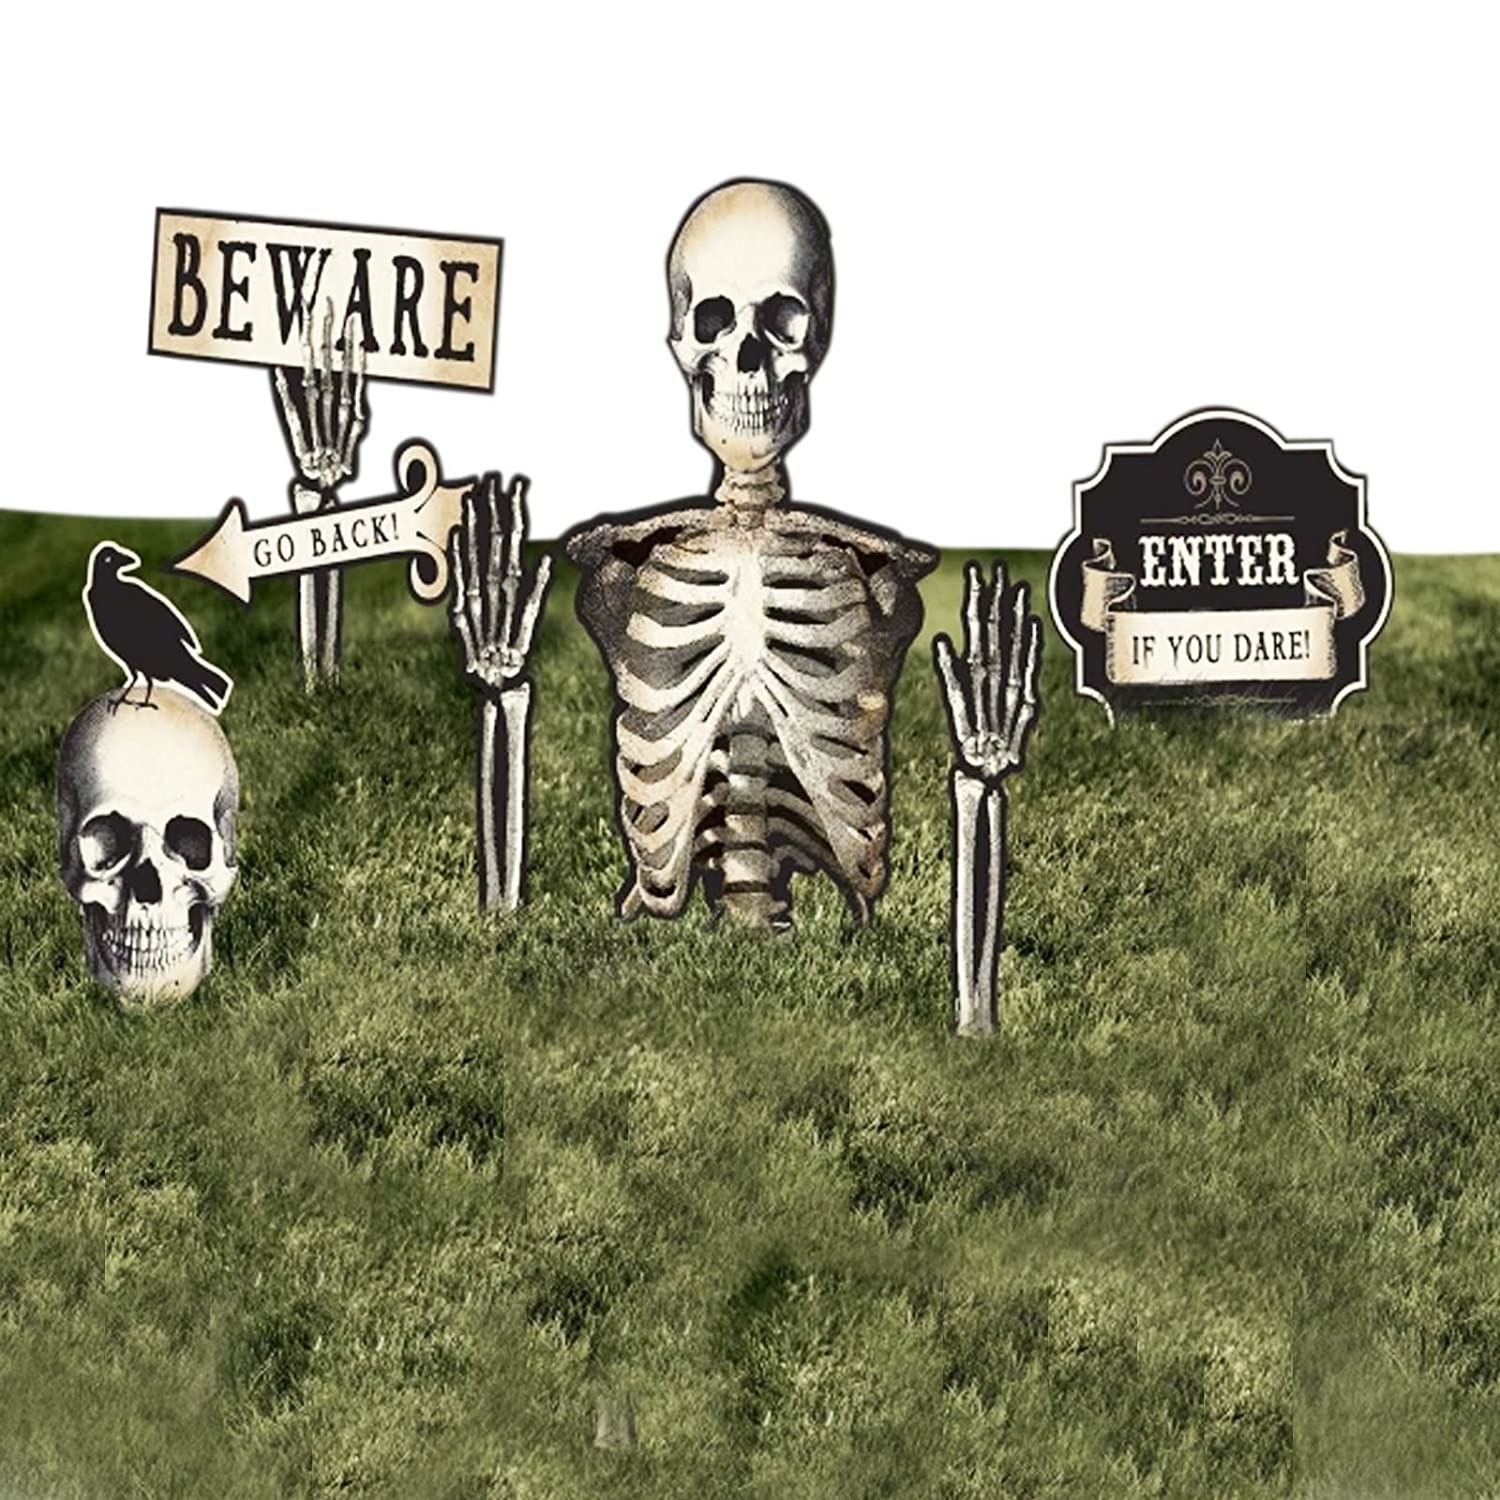 6 Pack of Halloween Lawn Decorations Boneyard Yard Grave Garden Sticks Skeletons Signs Halloween Outdoor Party Decoration Fancy Dress VIP